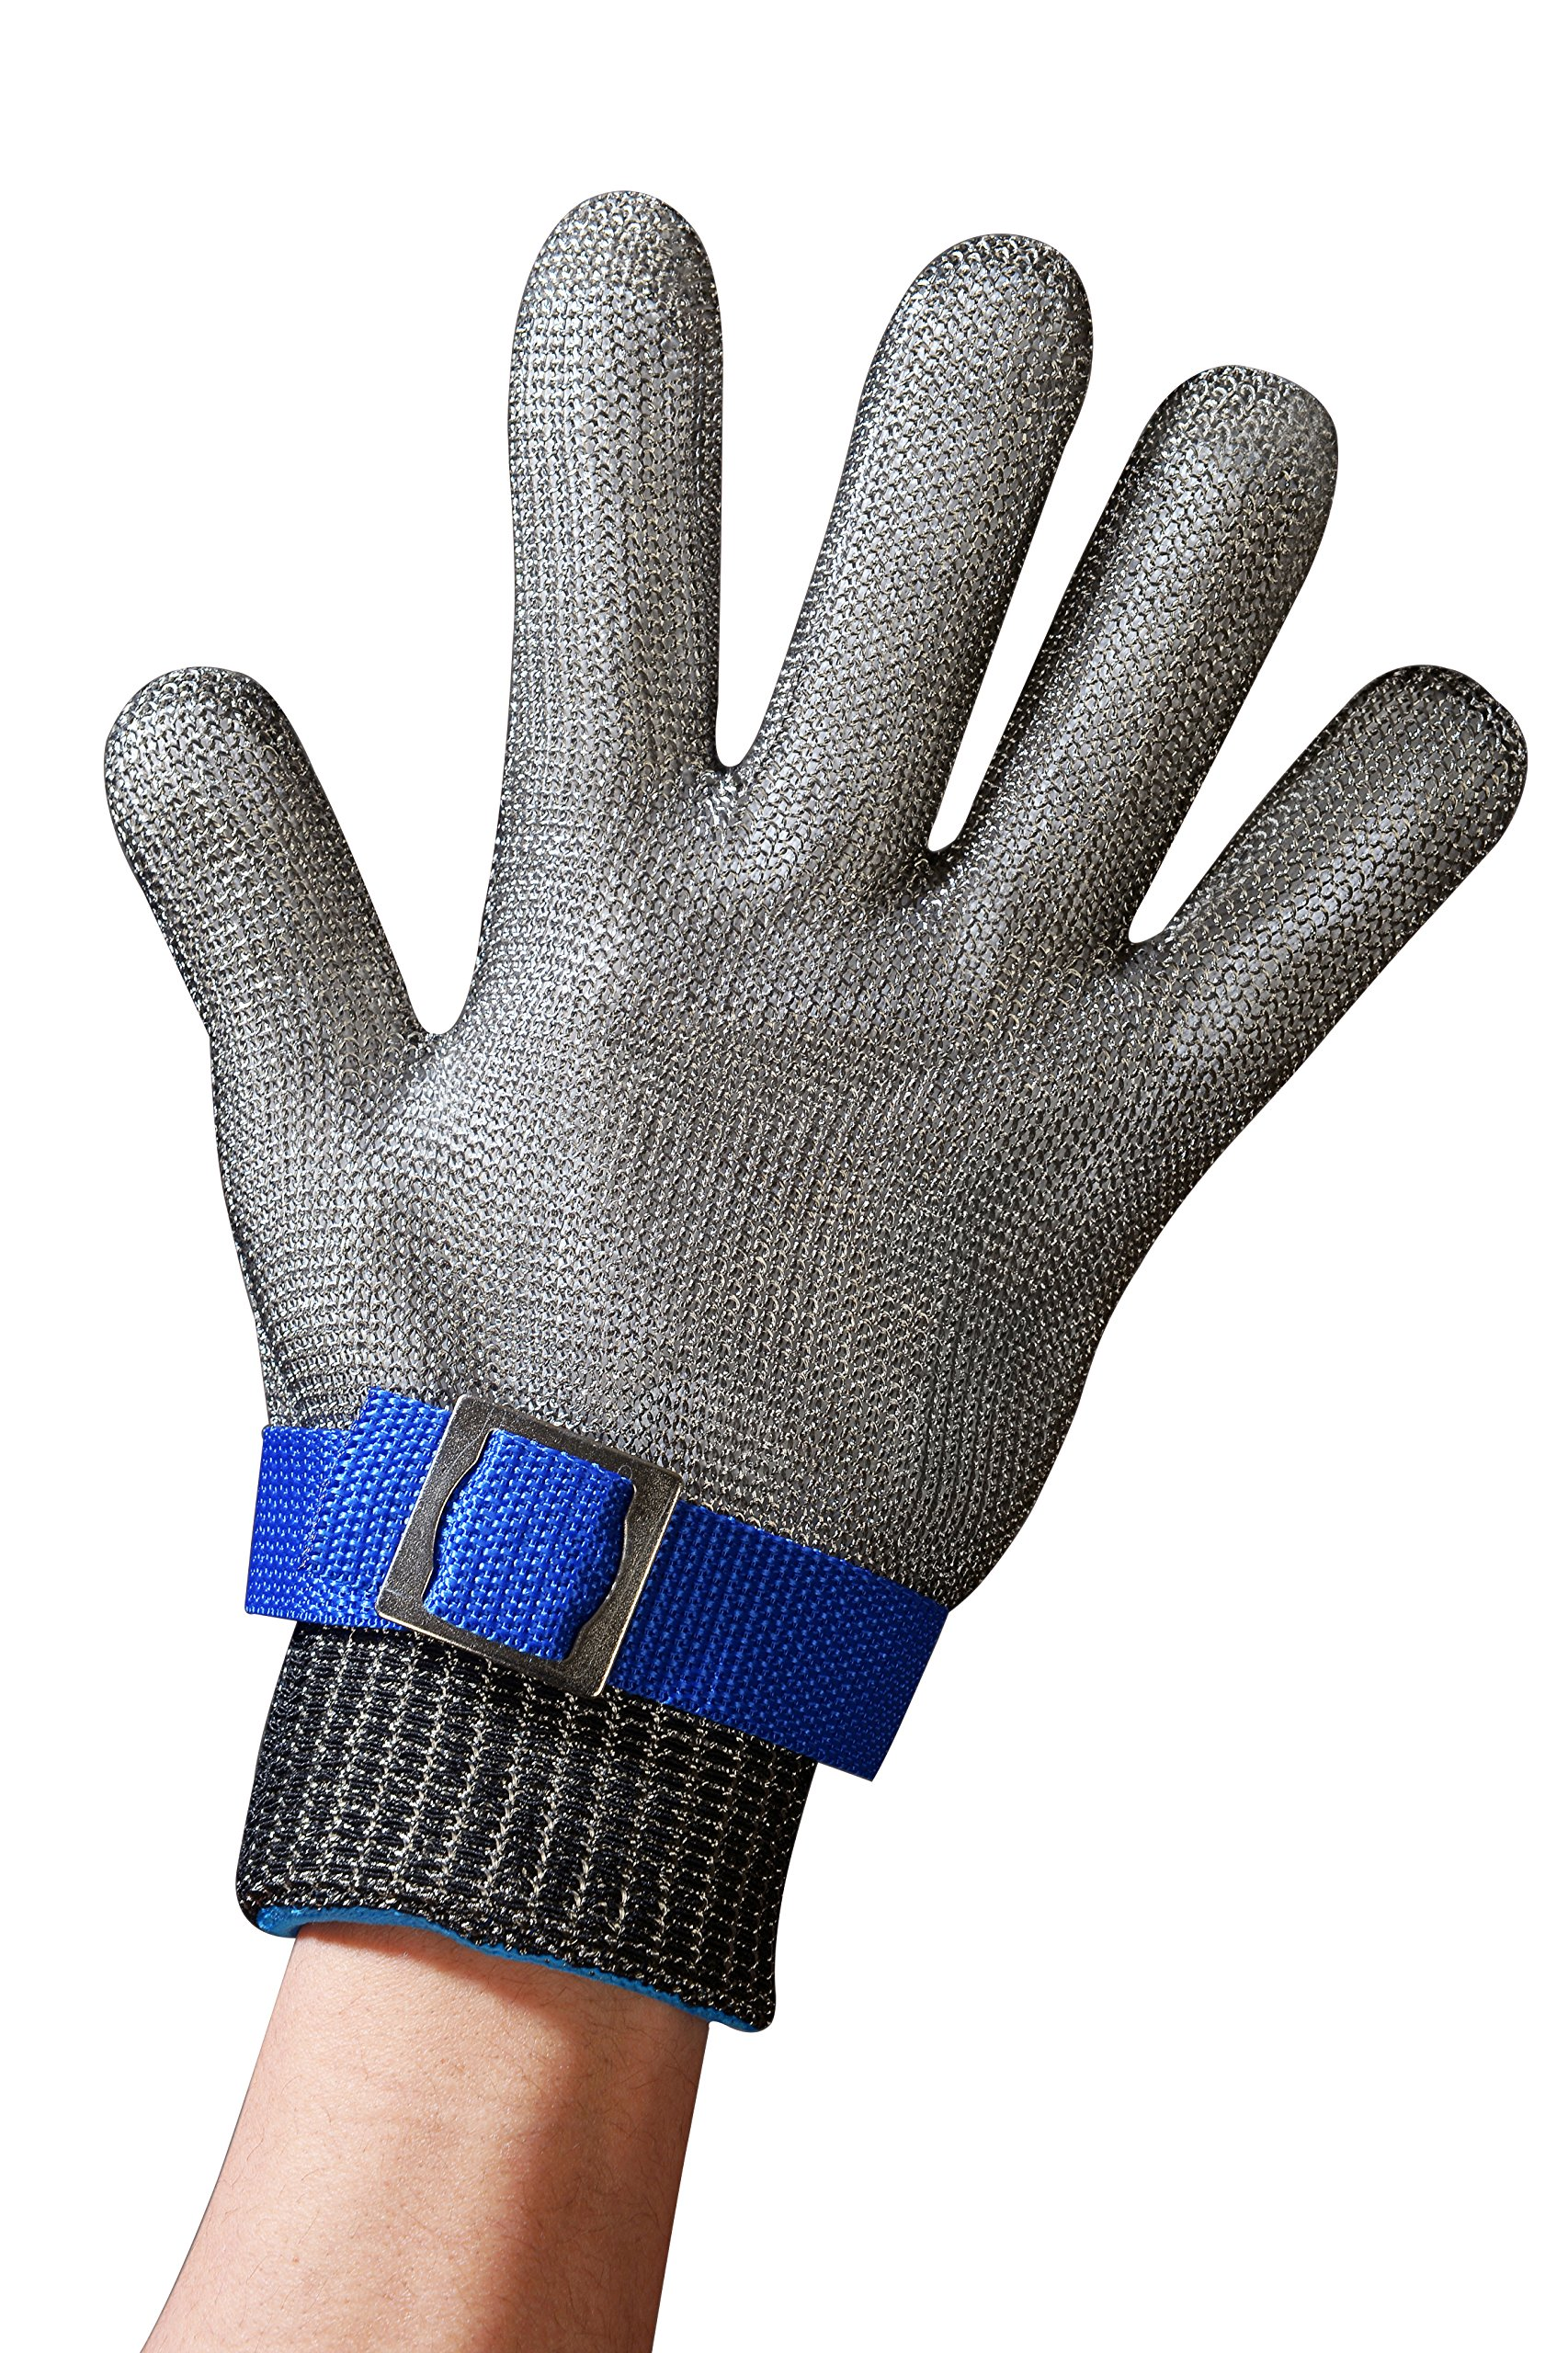 Schwer Cut Resistant Gloves-Stainless Steel Wire Metal Mesh Butcher Safety Work Gloves for Meat Cutting, fishing(Extra Large)